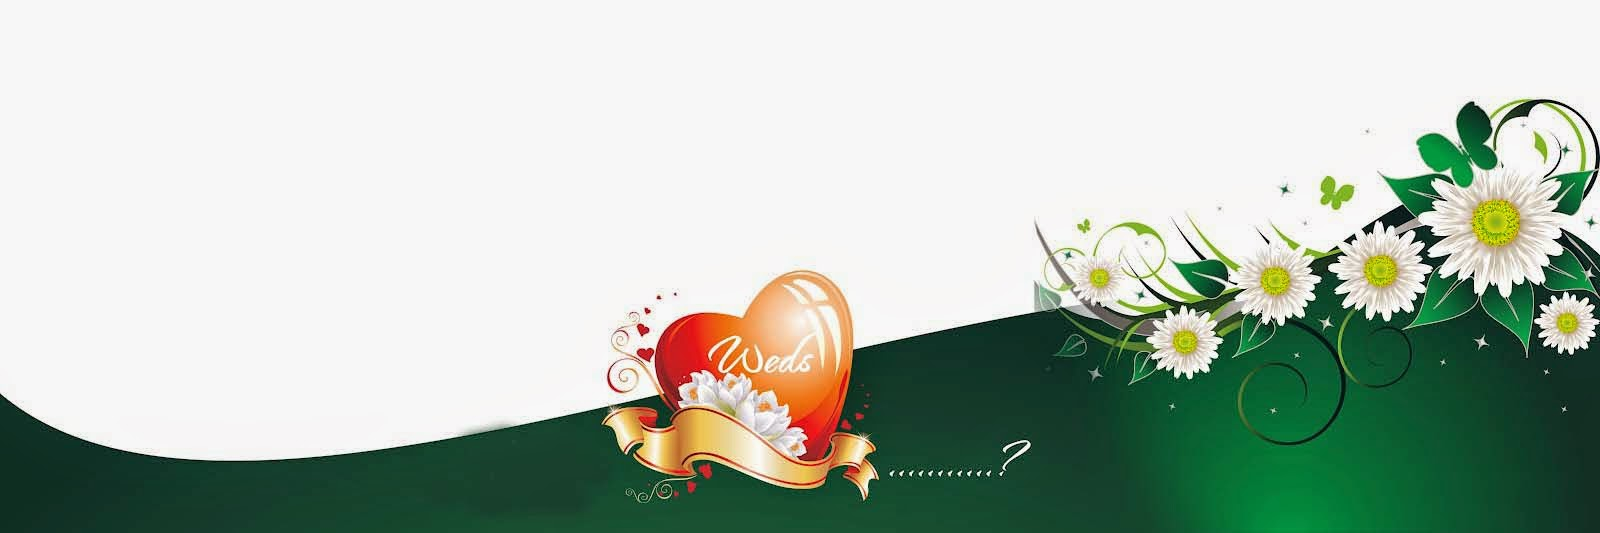 Marriage Background Png images collection for free download.